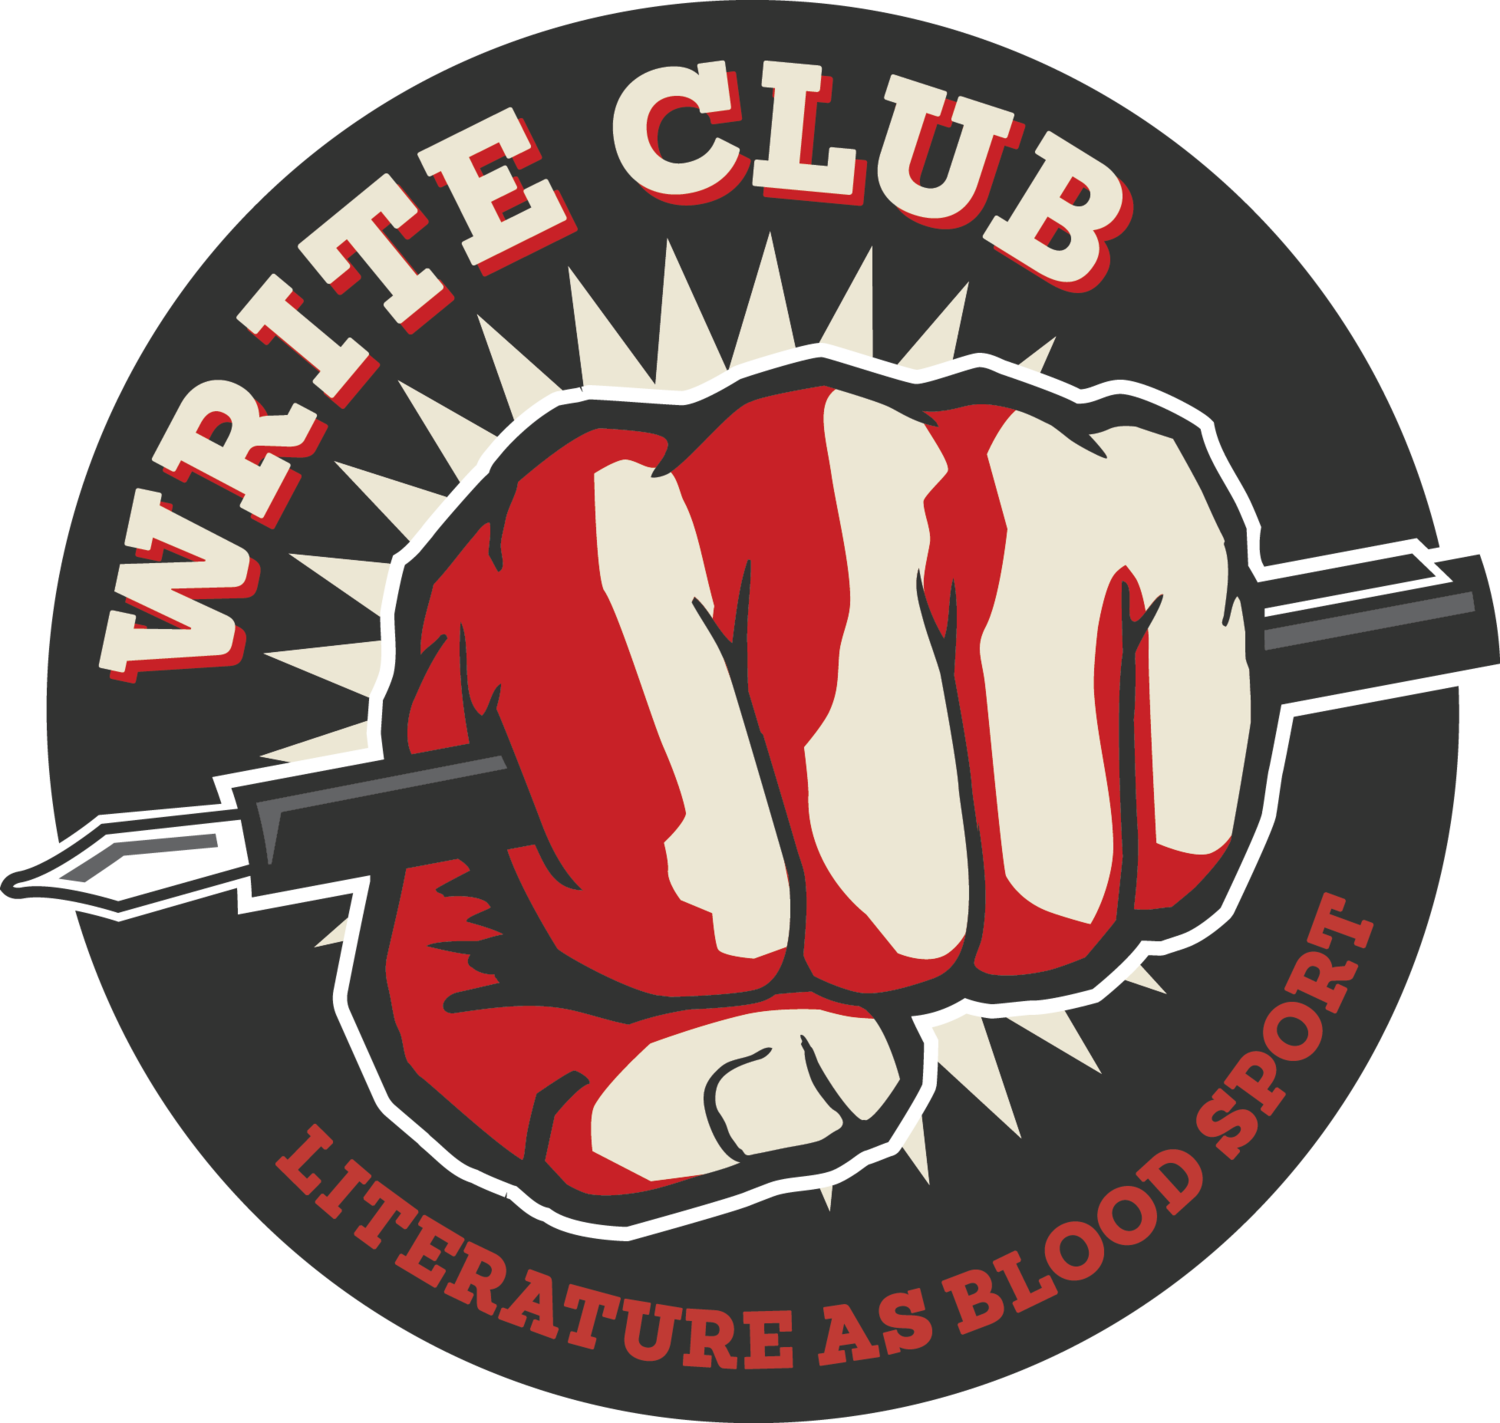 WRITE CLUB NATION